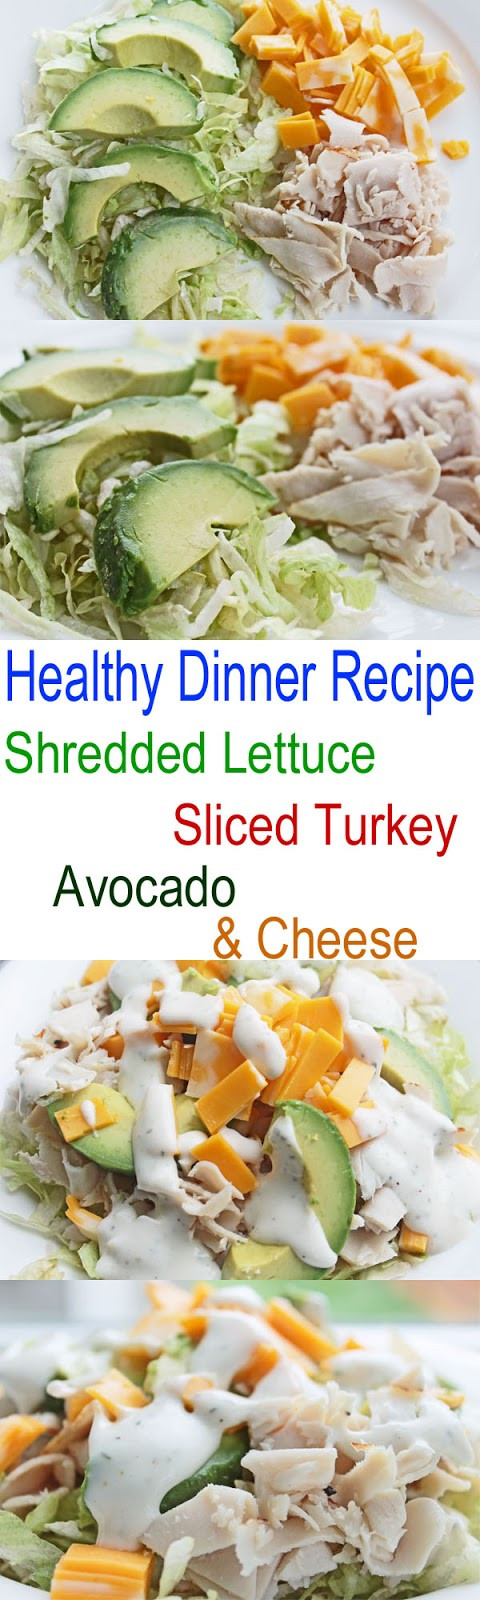 Healthy Clean Dinners  Healthy Dinner Recipe Shredded Lettuce Sliced Turkey